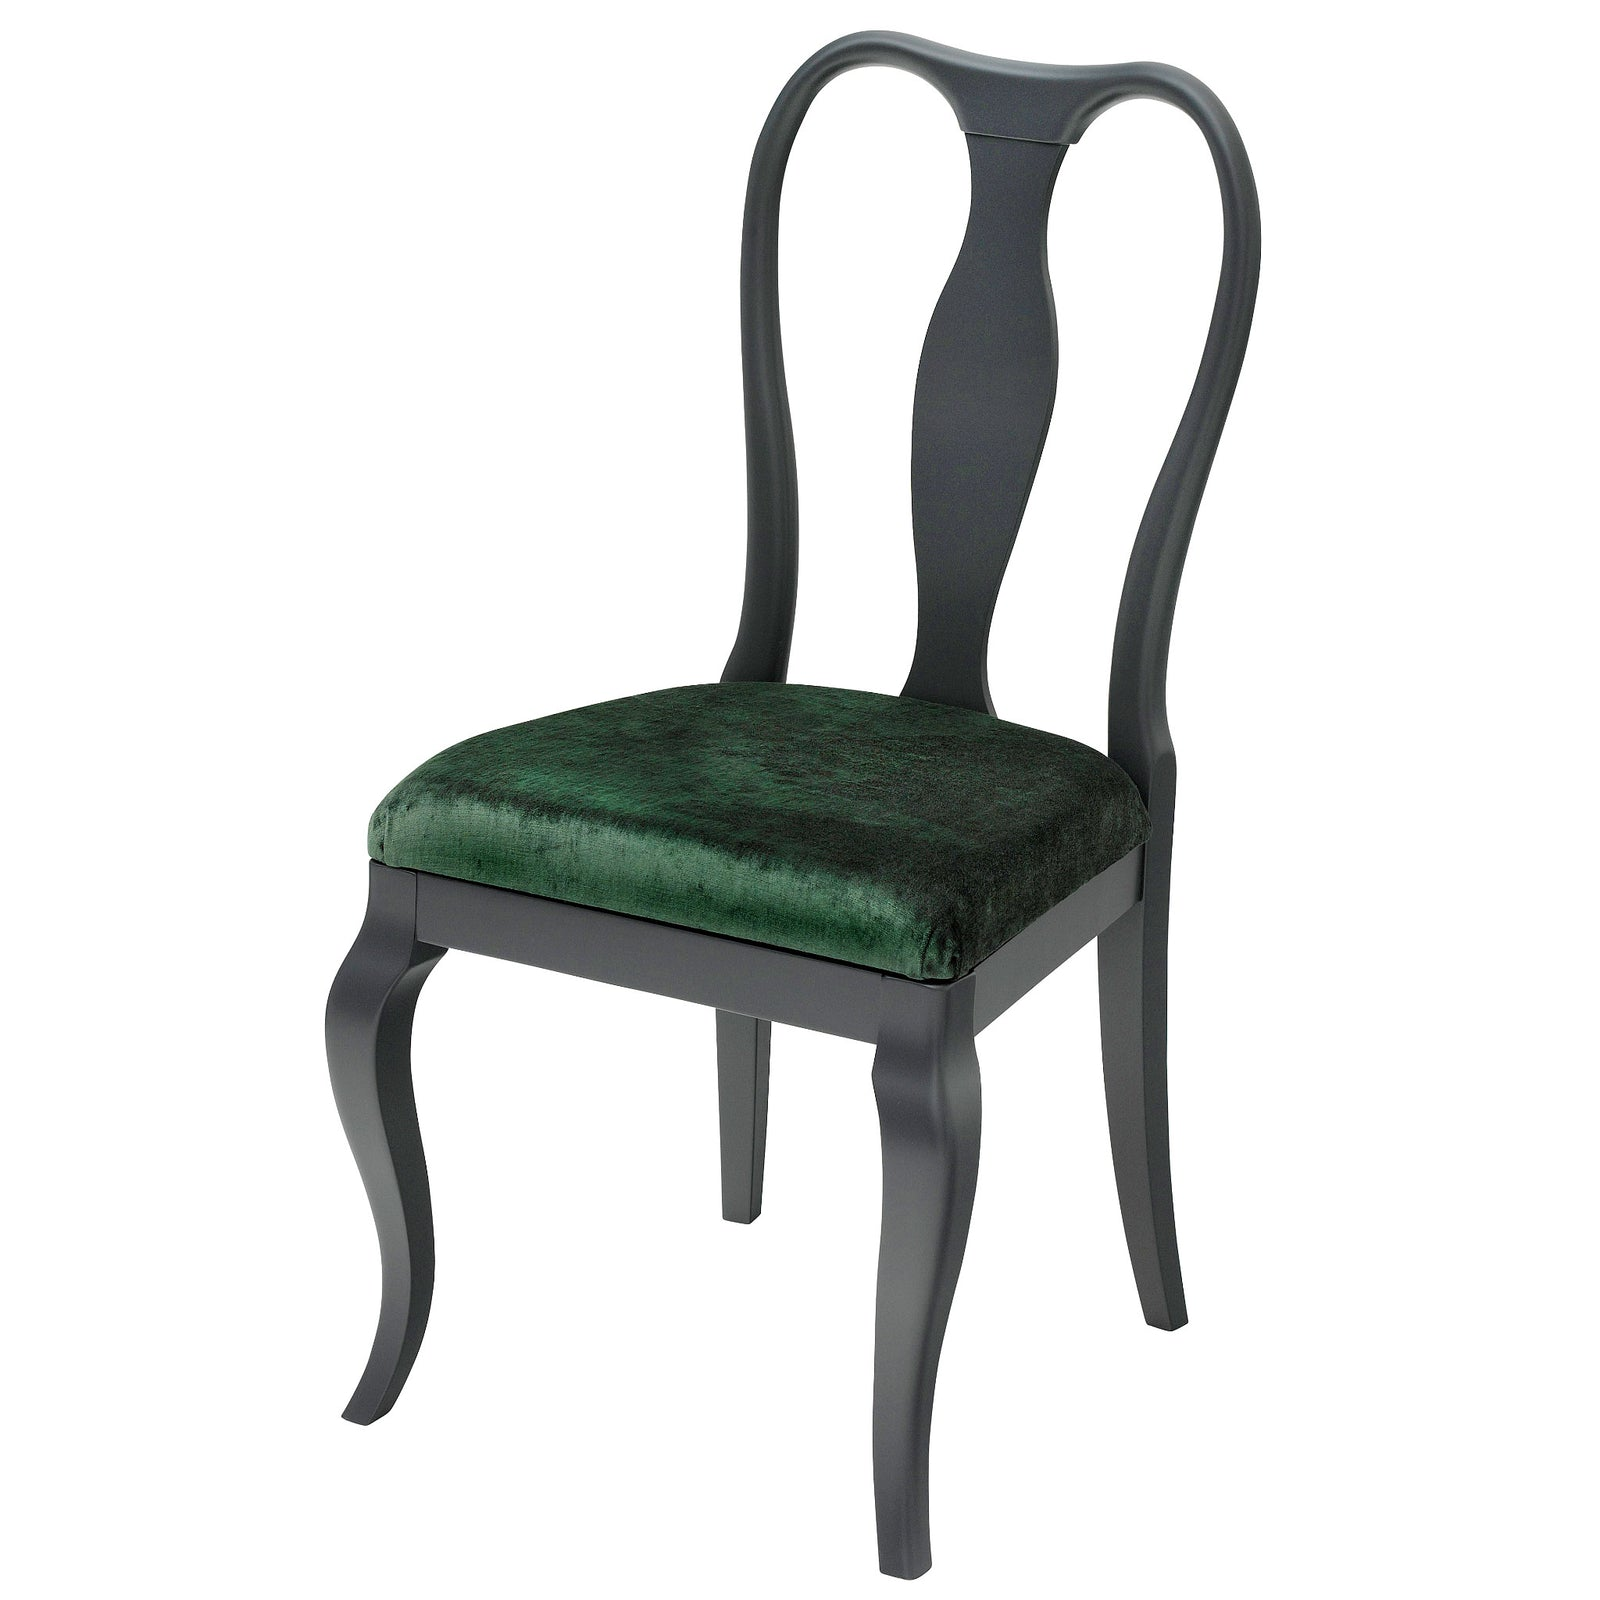 The Marco Side Chair upholstered in Deep Green luxurious velvet, finished in Charcoal Feist